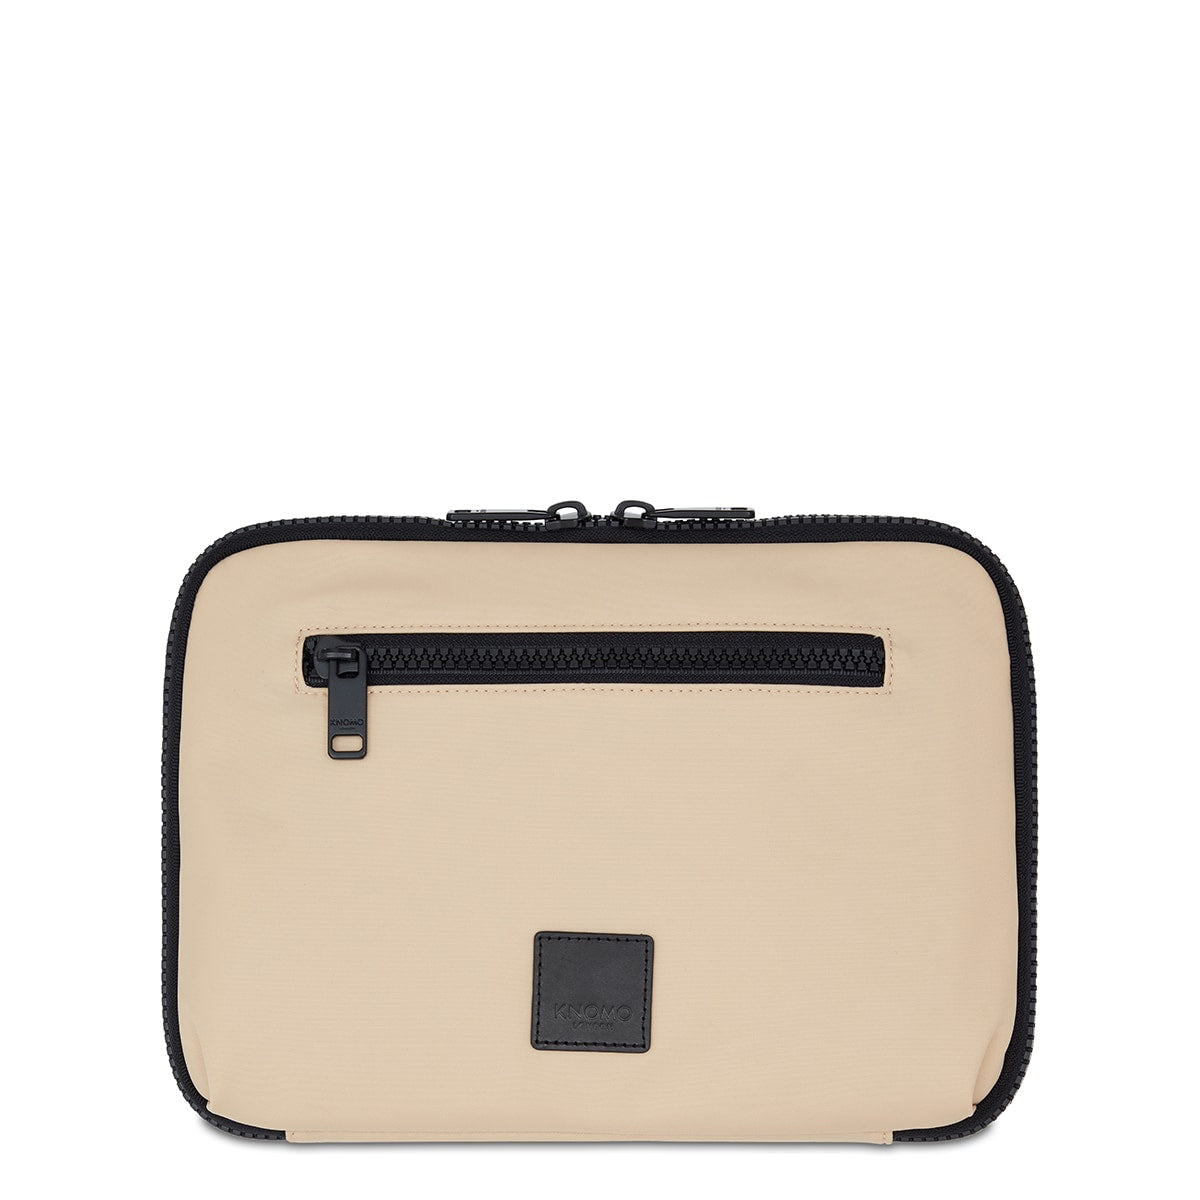 "Fulham Knomad X-Body Organizer Tech Organizer For Everyday - 10.5"" -  Trench Beige 